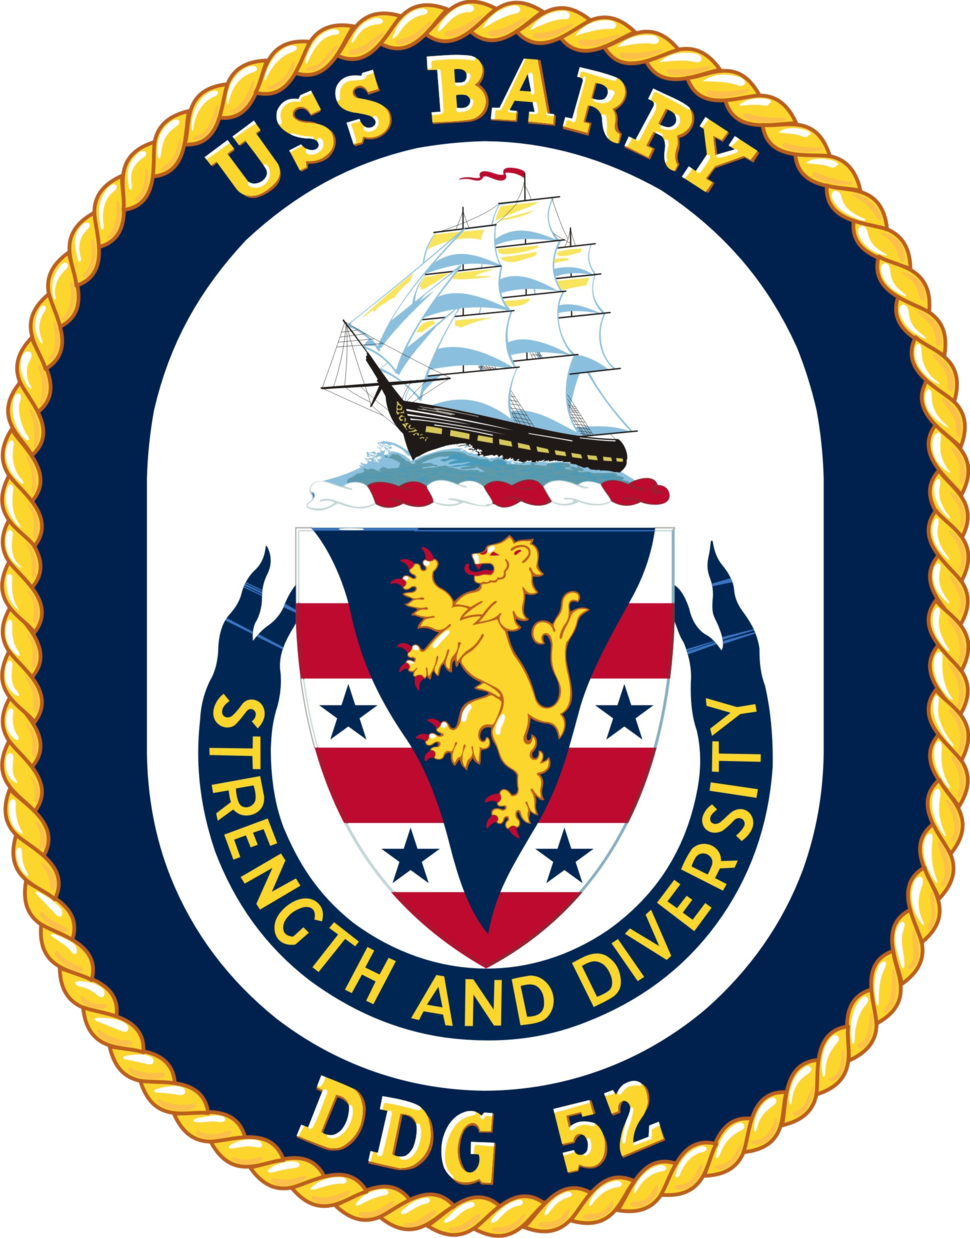 USS Barry DDG-52 Crest